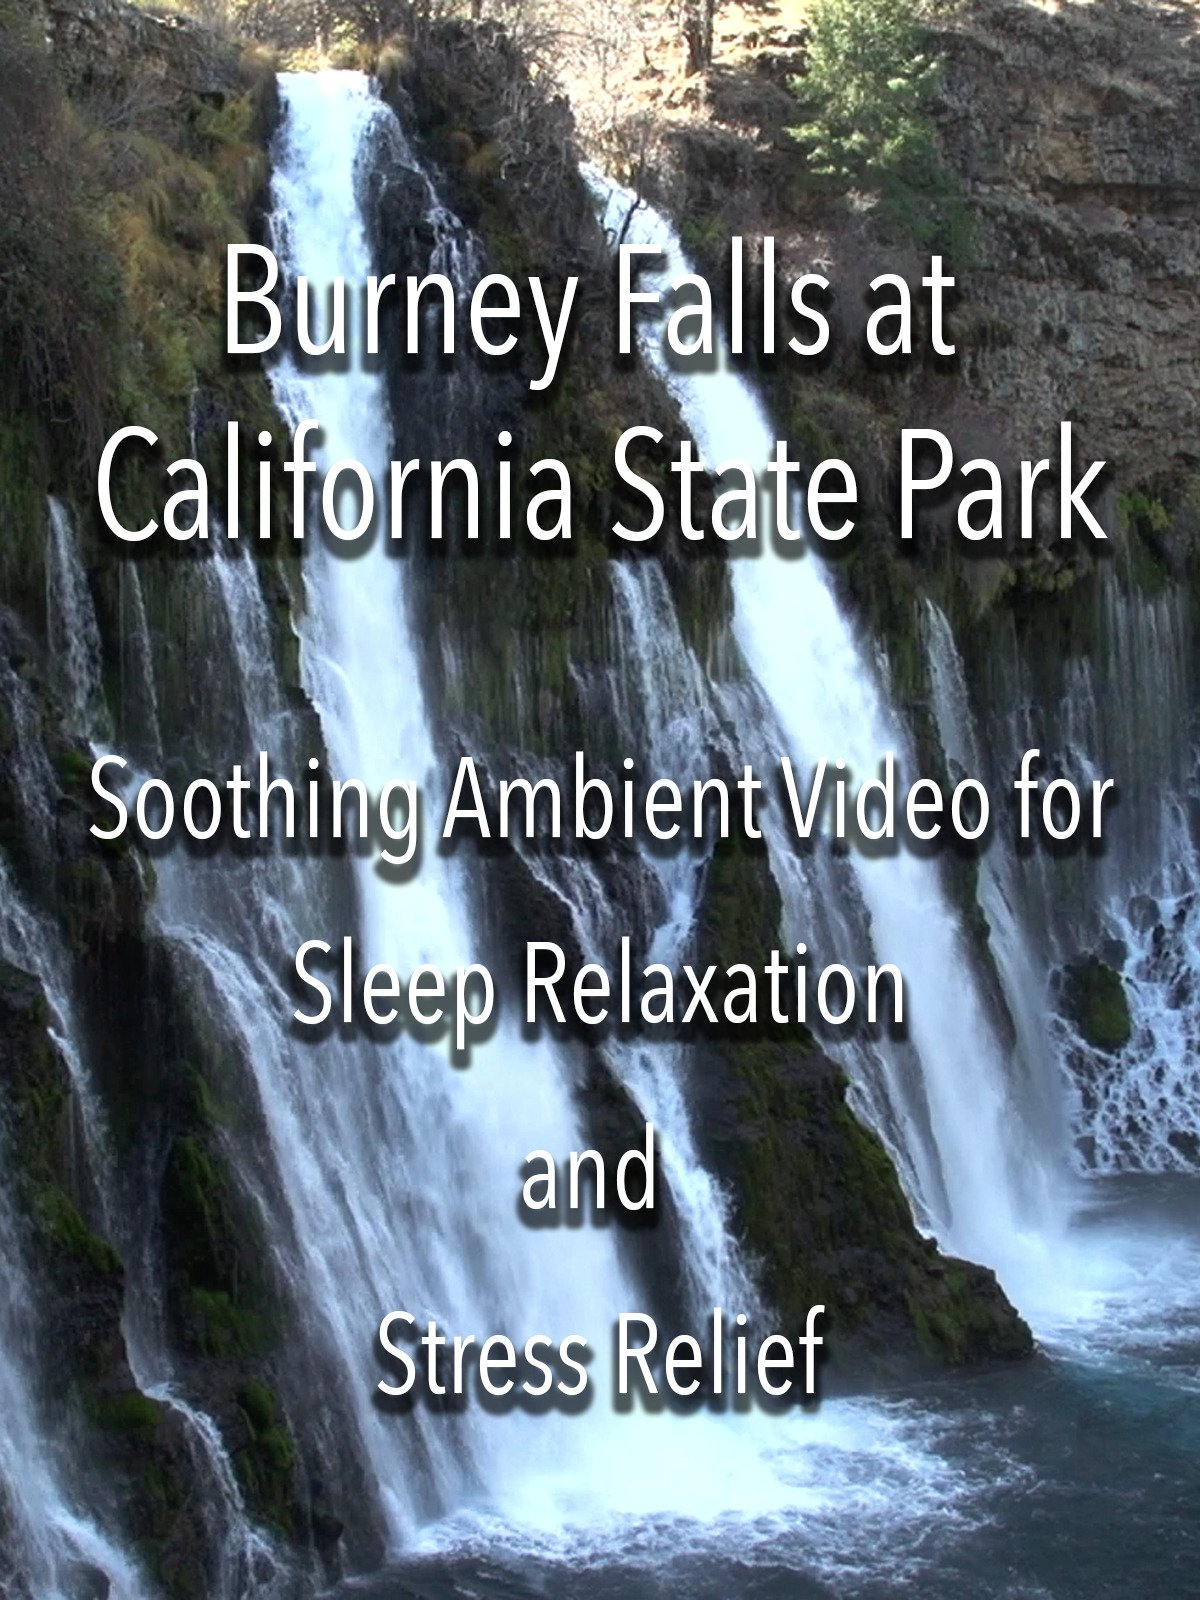 Burney Falls at California State Park Soothing Ambient Video for Sleep Relaxation and Stress Relief